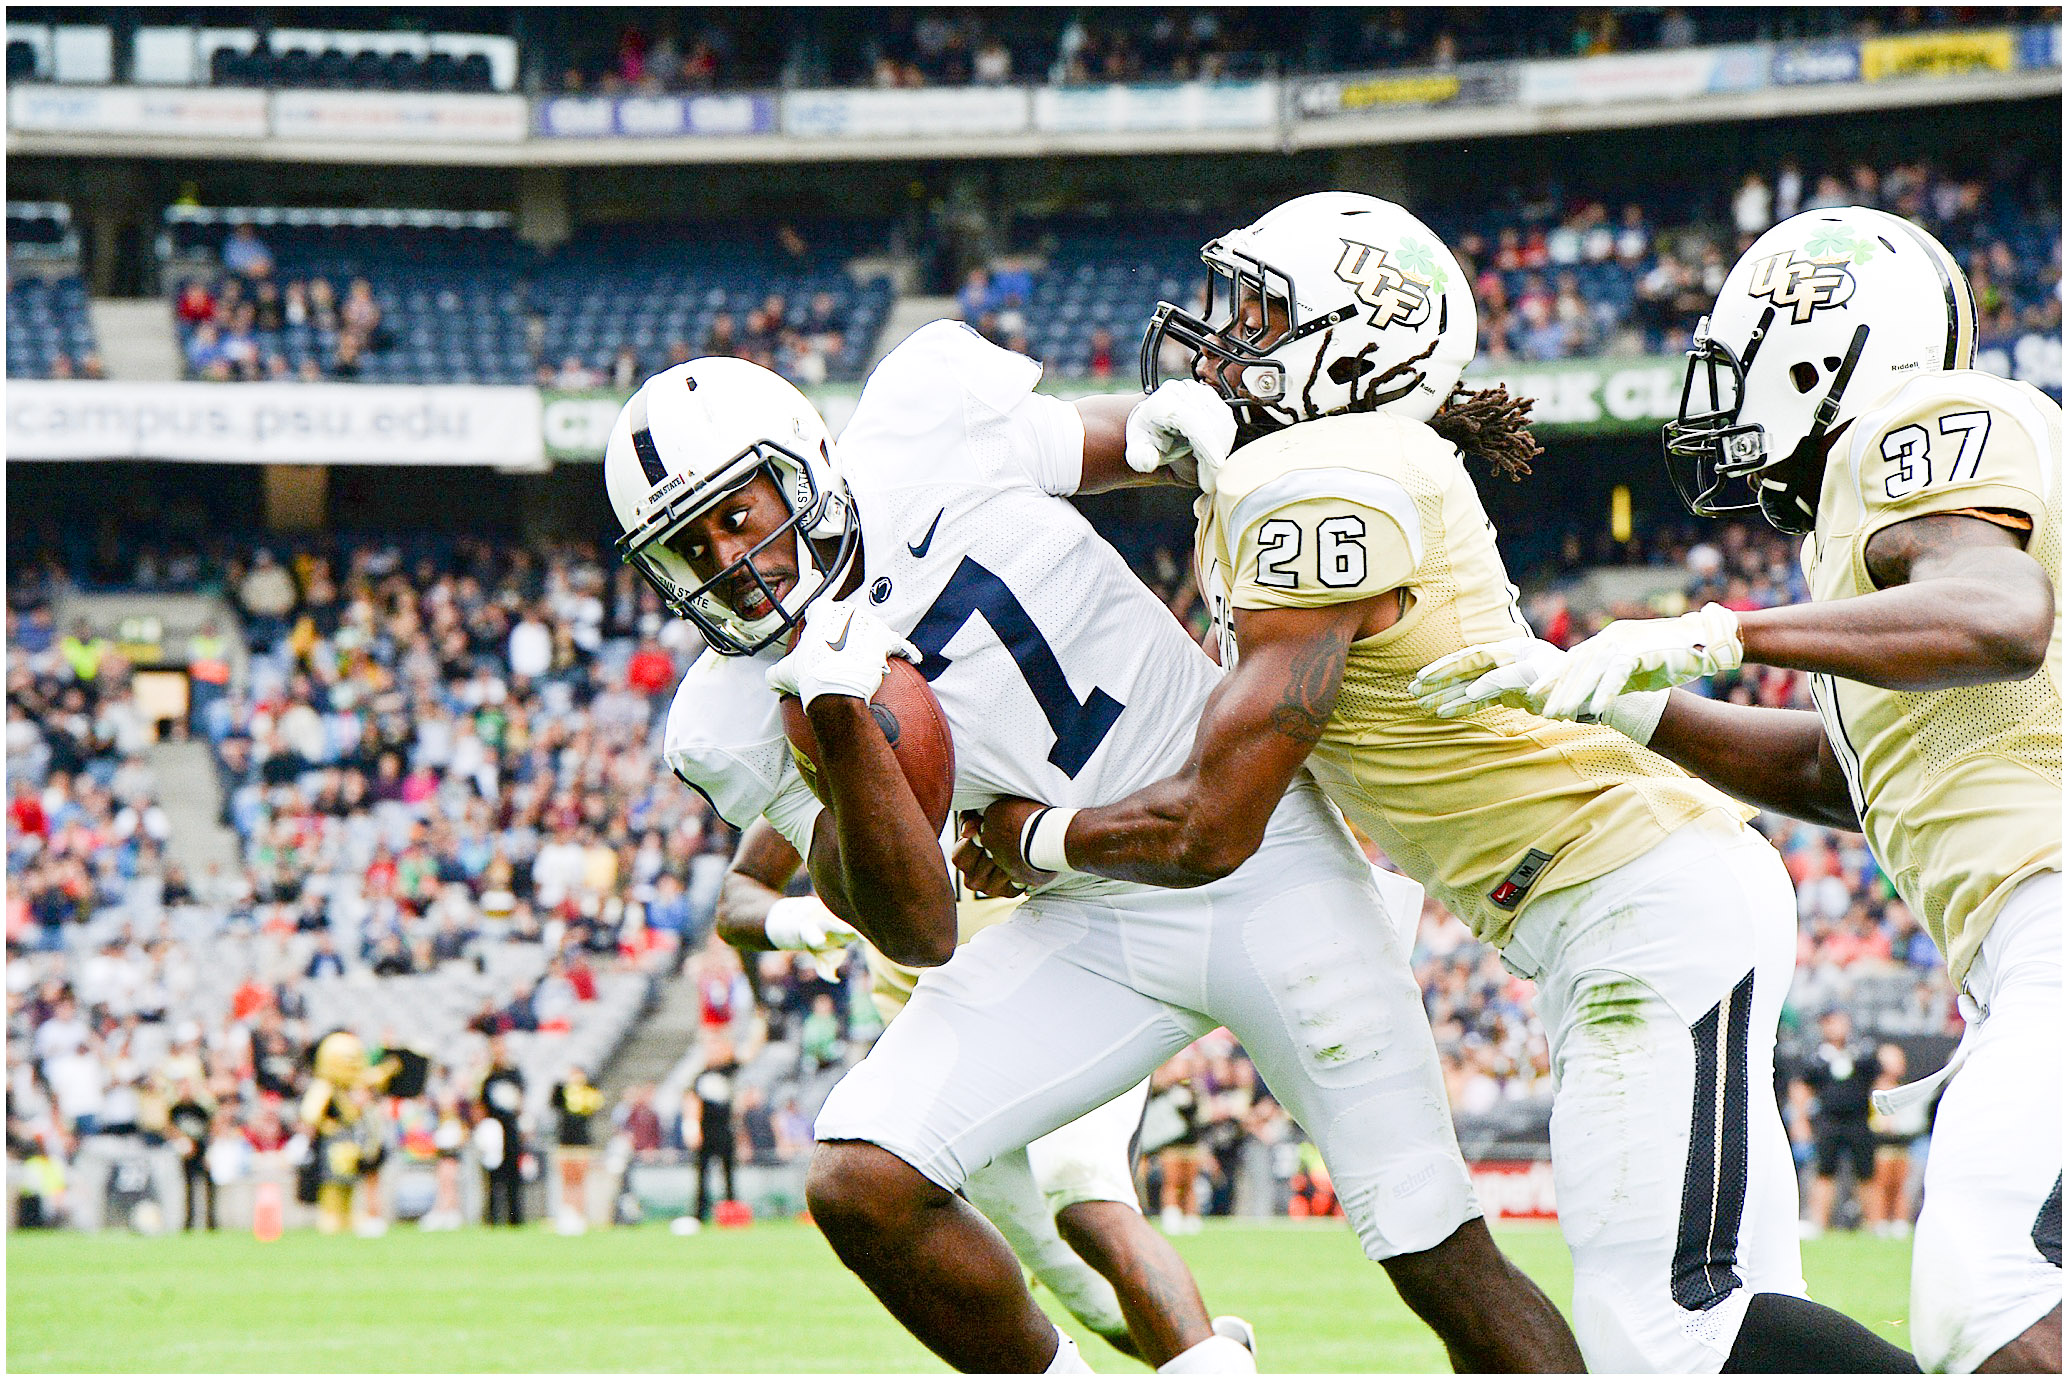 Penn State Nittany Lions wide receiver Geno Lewis (7) is tackled by UCF Knights defensive back Clayton Geathers (26) during the second half of the Croke Park Classic in Dublin, Ireland, on Saturday, Aug. 30, 2014. Penn State defeated Central Florida 26-24. Photo by Hannah Byrne